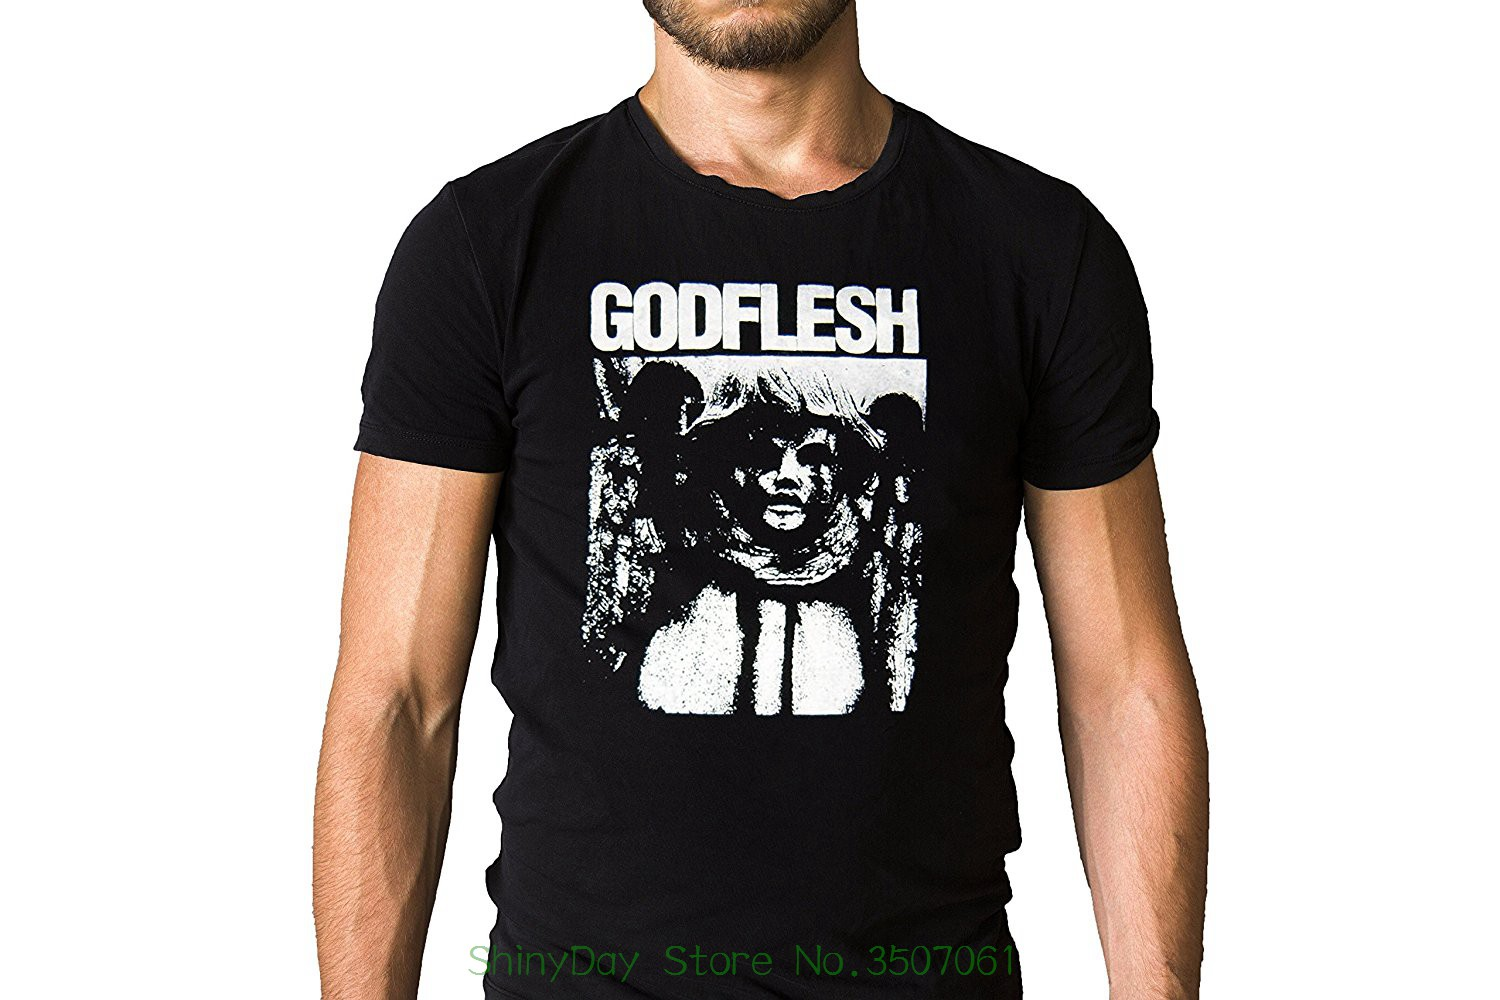 O Neck Shirt Plus Size T-shirt Godflesh Industrial Metal Band Pure 1992 Mothra Song Inspired Black T-shirt